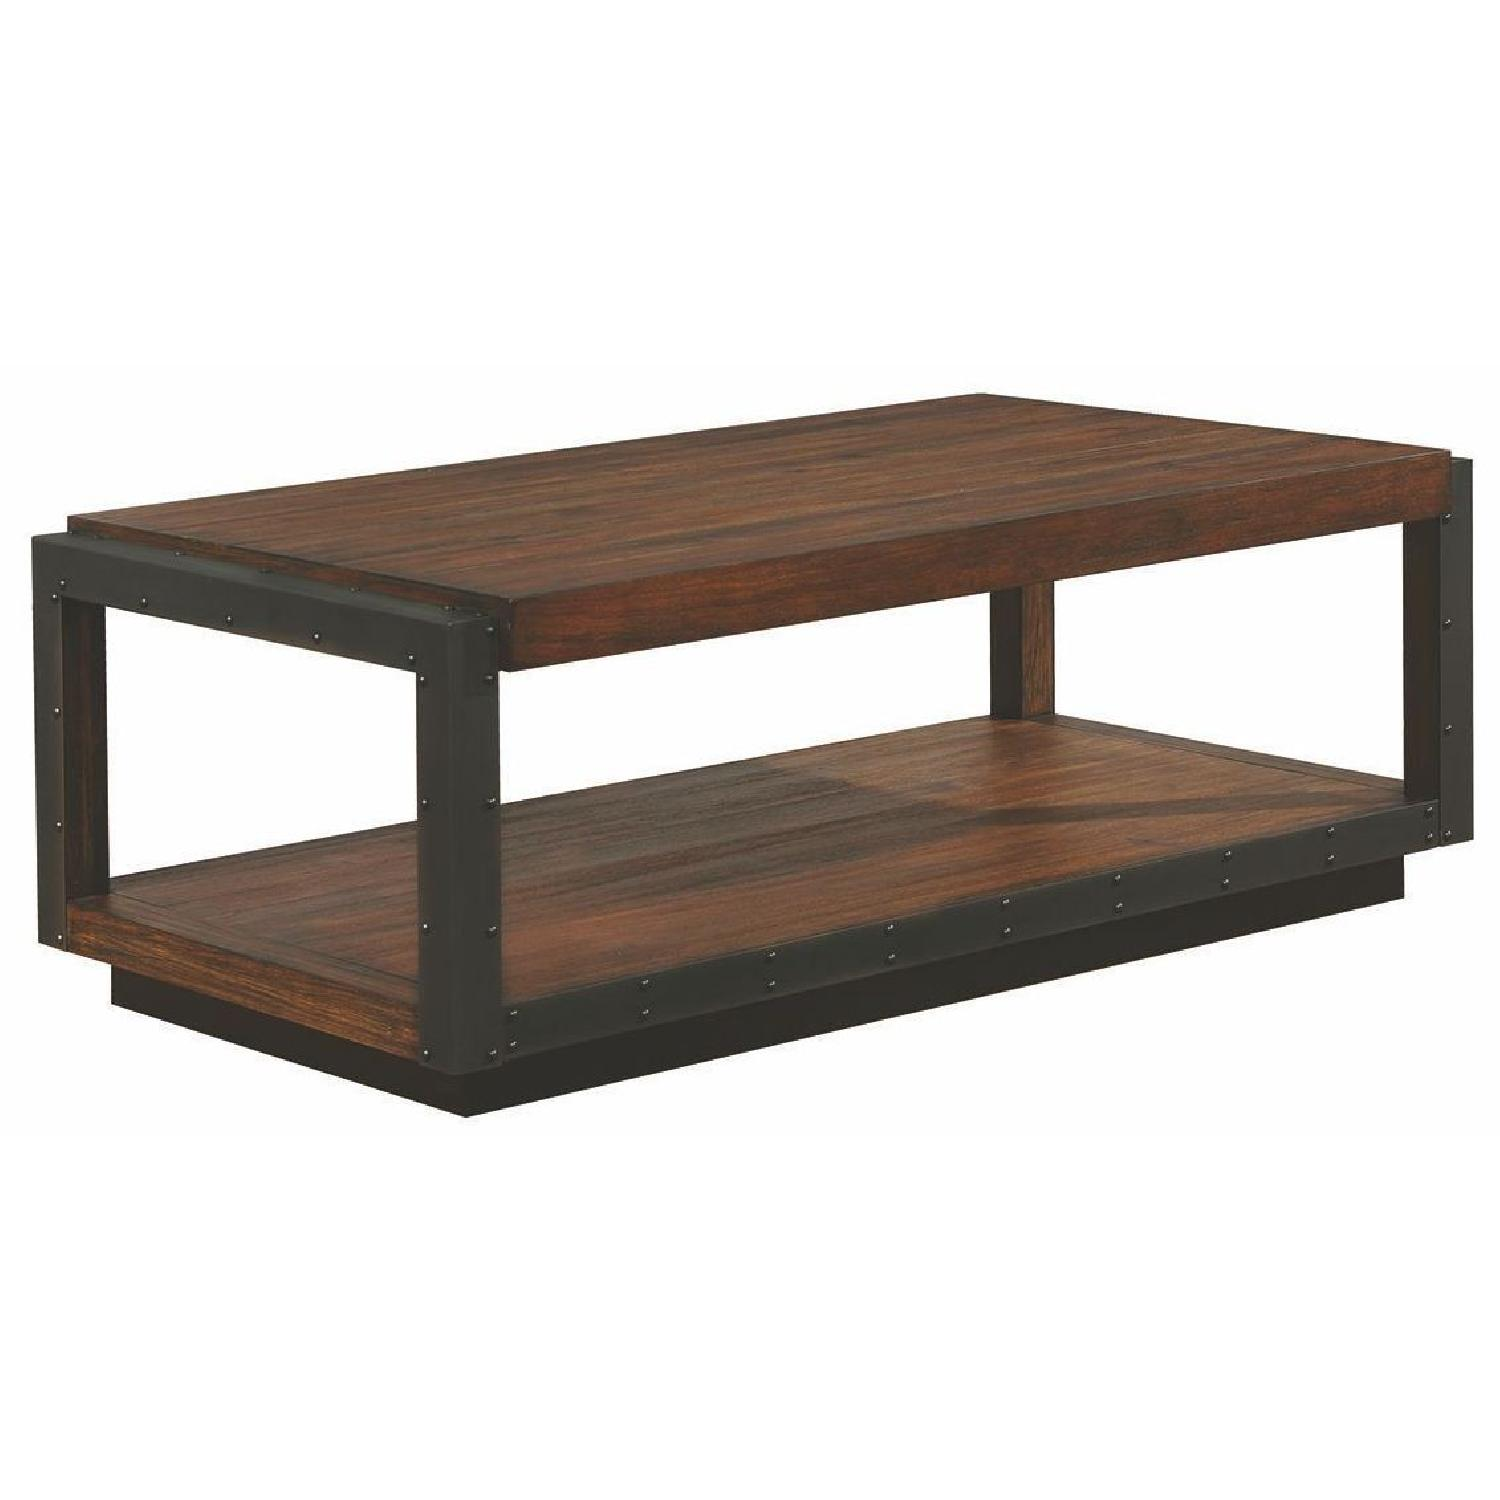 Superbe Industrial Style Coffee Table In Bourbon W/ Black Metal Trim ...